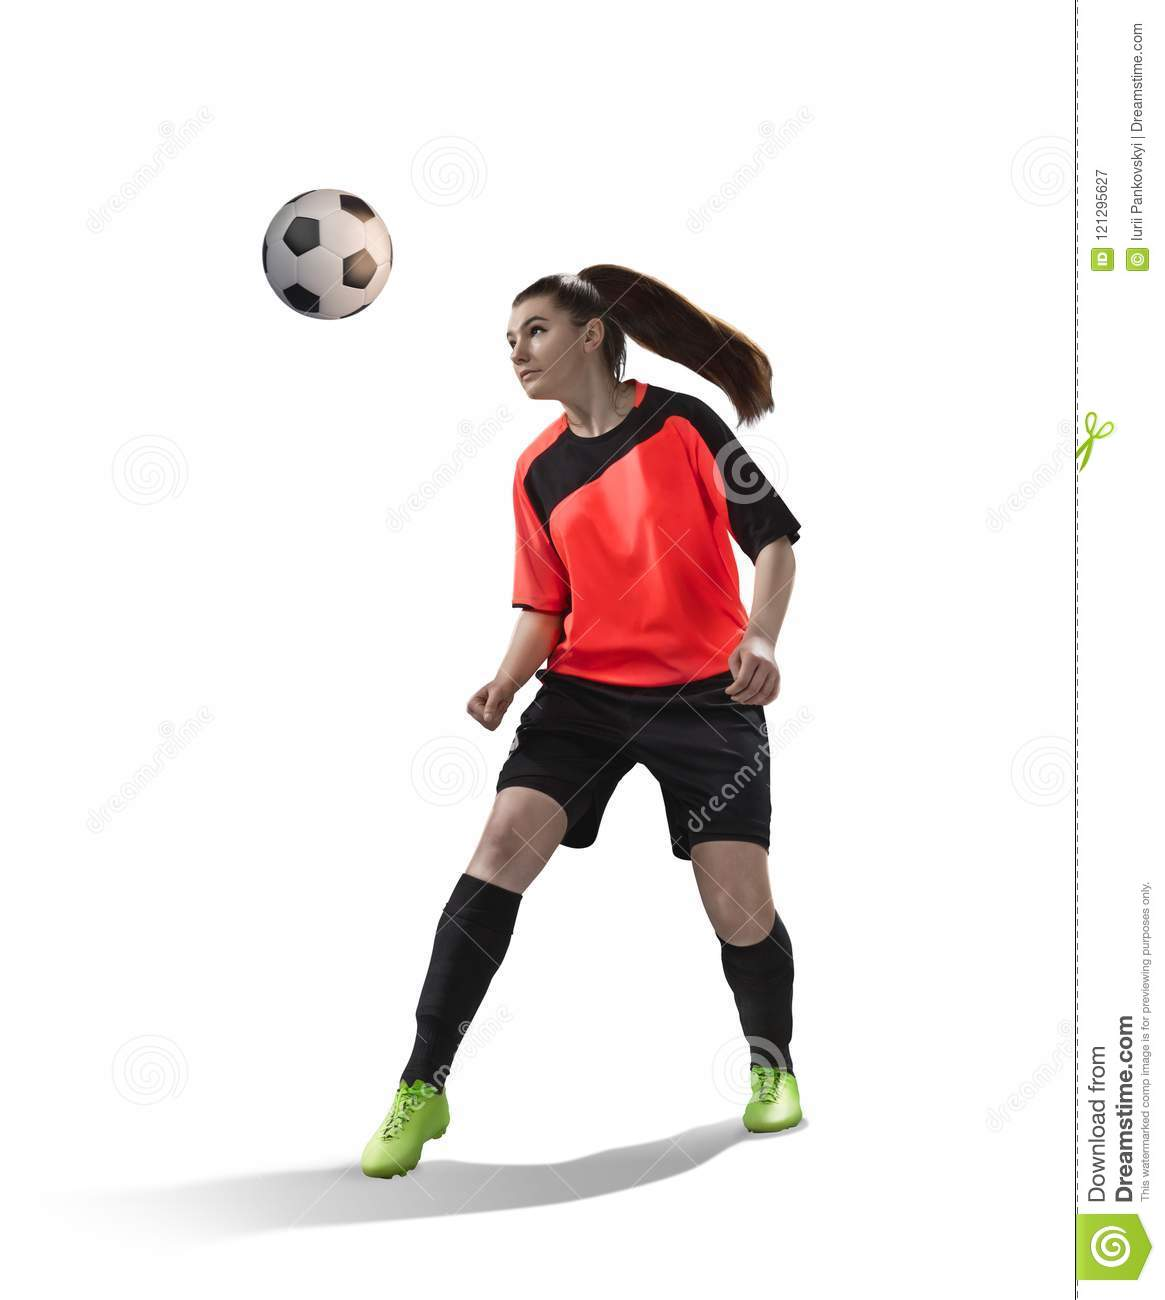 Female soccer making a header